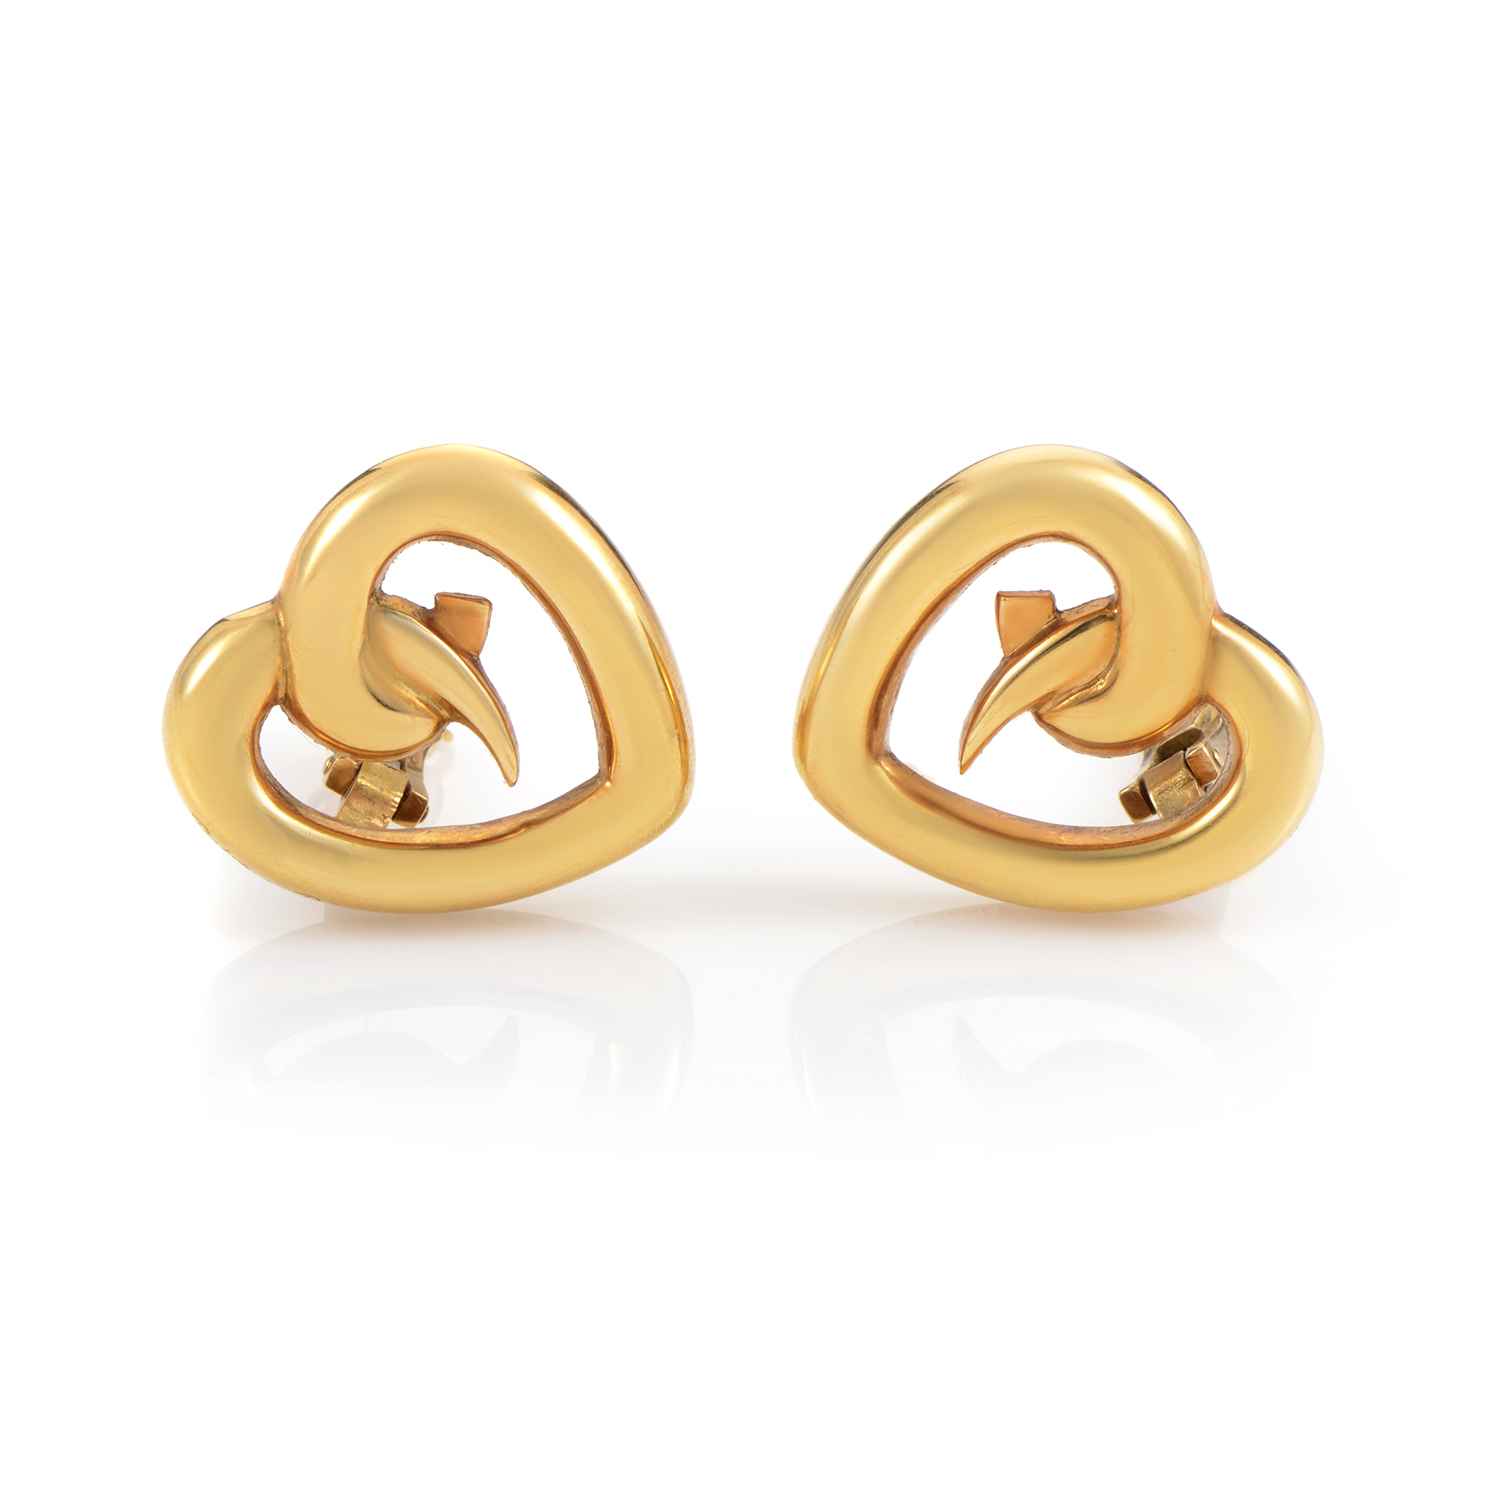 Tiffany & Co. Paloma Picasso Loving Heart 18K Yellow Gold Clip-on Earrings